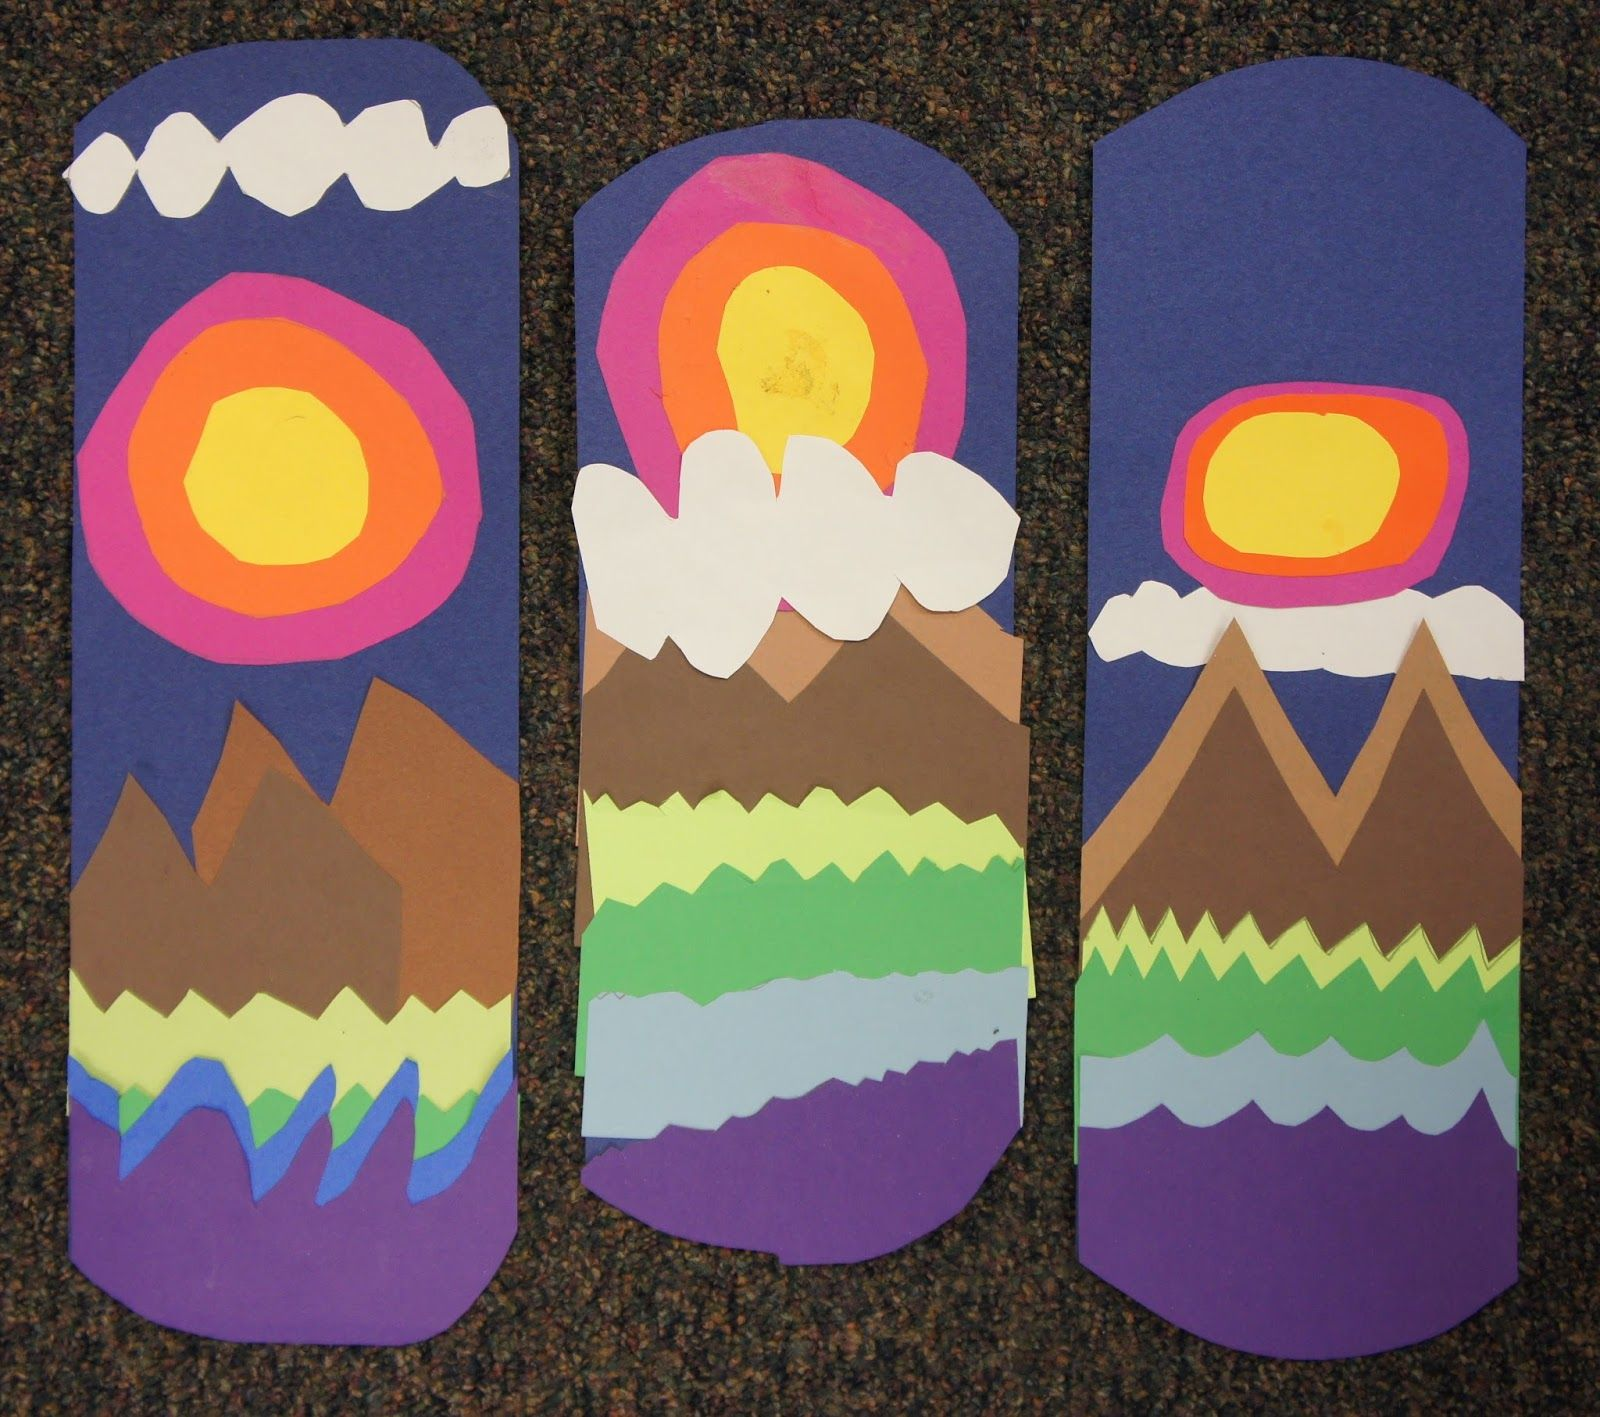 This Week The 2nd Graders Are Working With Collage And